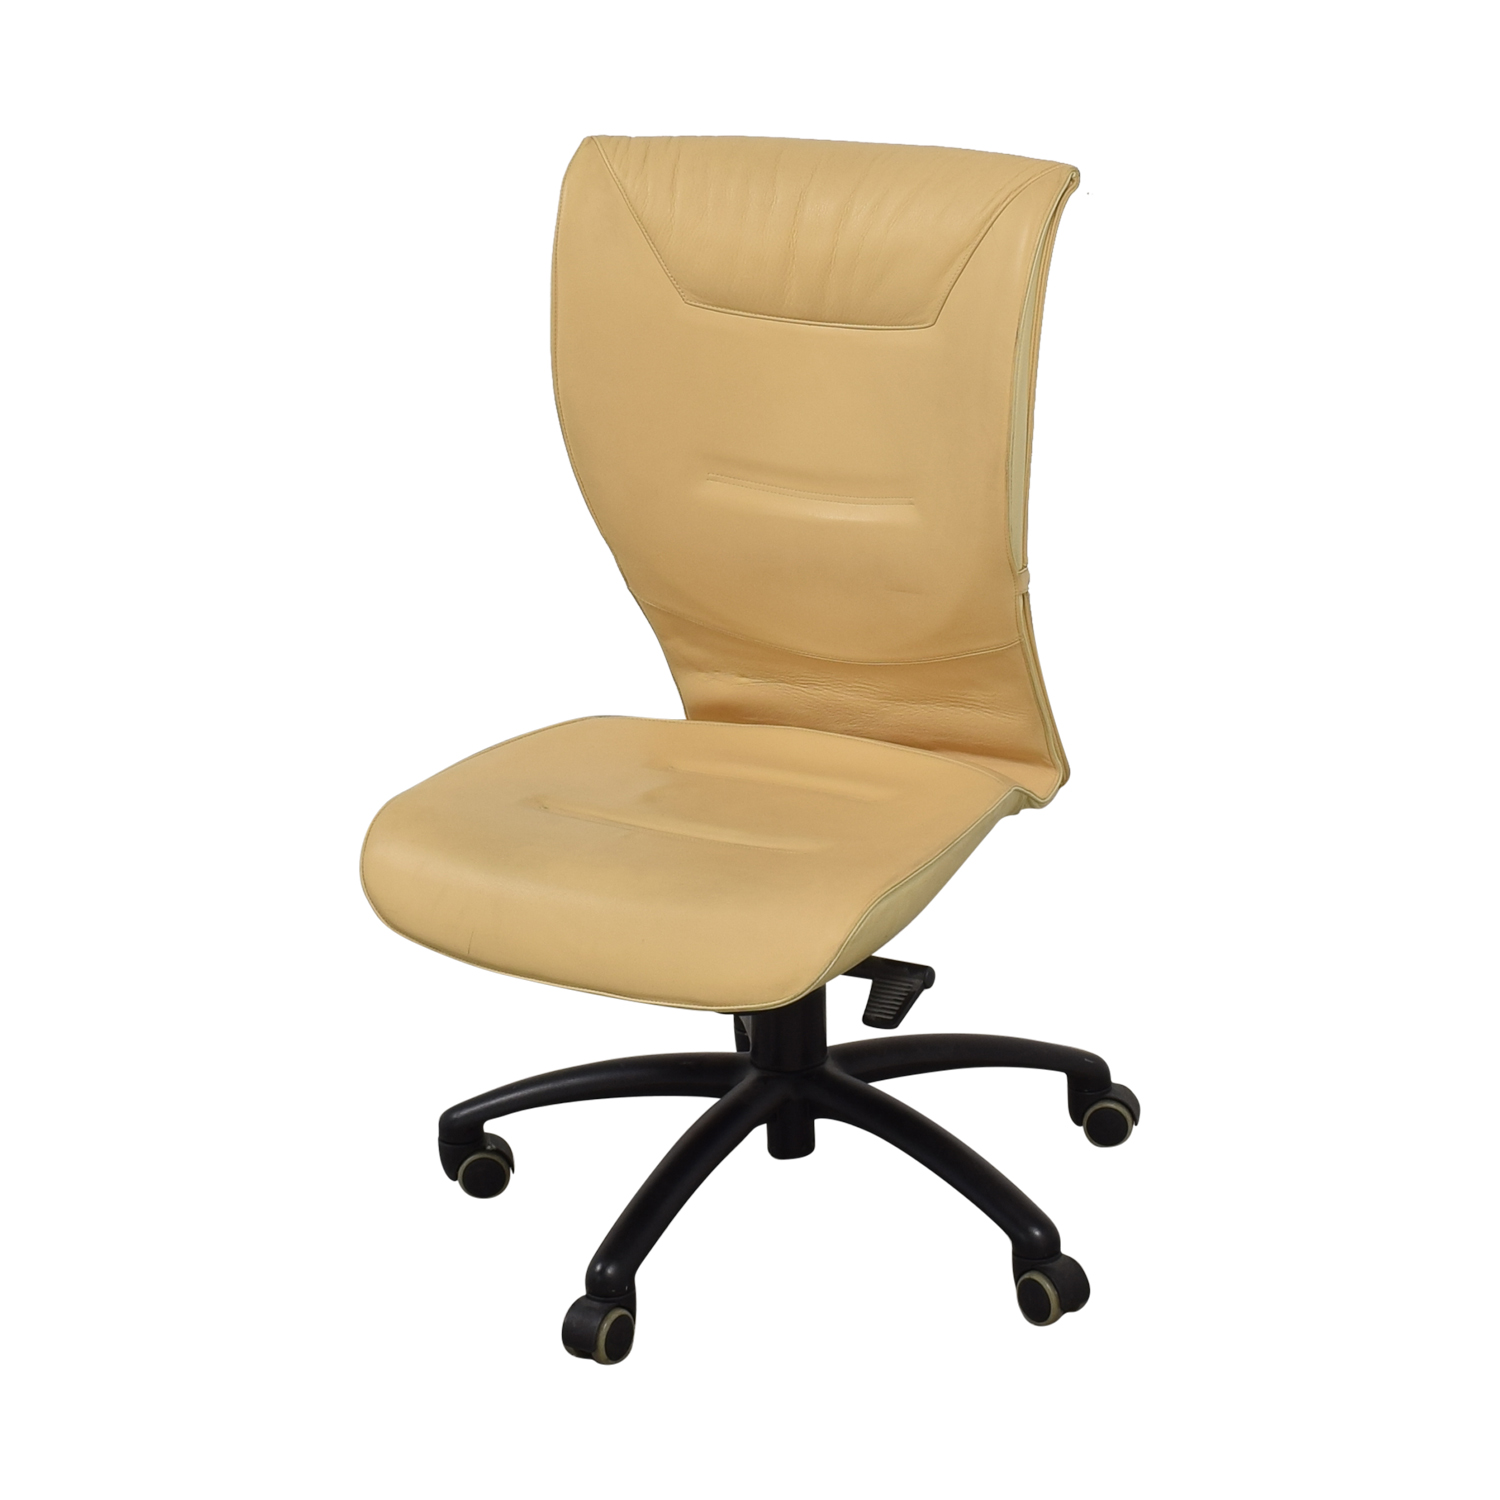 Poltrona Frau Poltrona Frau Office Chair nj